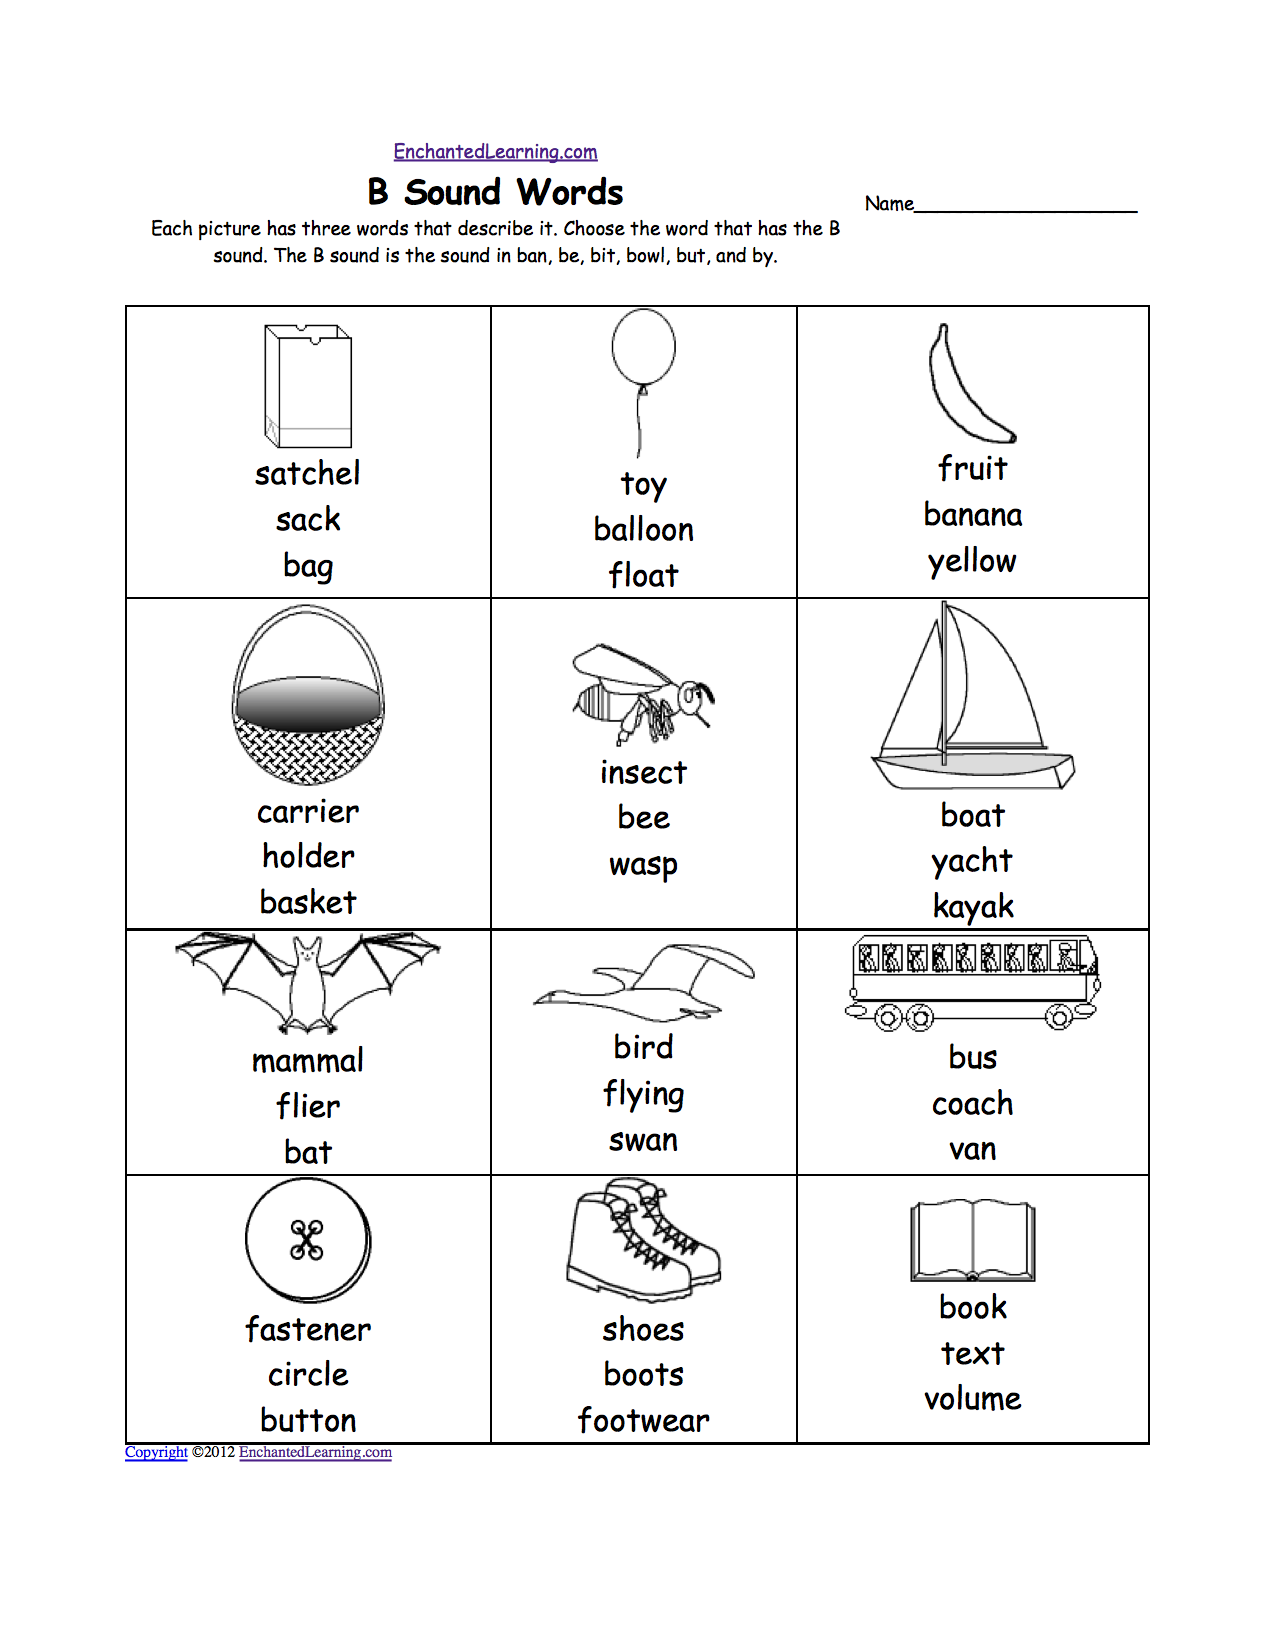 Proatmealus  Personable Phonics Worksheets Multiple Choice Worksheets To Print  With Foxy Quotbquot Sound Phonics Worksheet Multiple Choice Each Picture Has Three Words That Describe It Choose The Word That Has A Quotbquot Sound The Quotbquot Sound Is The Sound  With Alluring Worksheet On Integers For Grade  Also Blank Globe Worksheet In Addition Simple Percentages Worksheet And Family Expenses Worksheet As Well As Dividing By  Worksheets Additionally Grade  Surface Area Worksheets From Enchantedlearningcom With Proatmealus  Foxy Phonics Worksheets Multiple Choice Worksheets To Print  With Alluring Quotbquot Sound Phonics Worksheet Multiple Choice Each Picture Has Three Words That Describe It Choose The Word That Has A Quotbquot Sound The Quotbquot Sound Is The Sound  And Personable Worksheet On Integers For Grade  Also Blank Globe Worksheet In Addition Simple Percentages Worksheet From Enchantedlearningcom